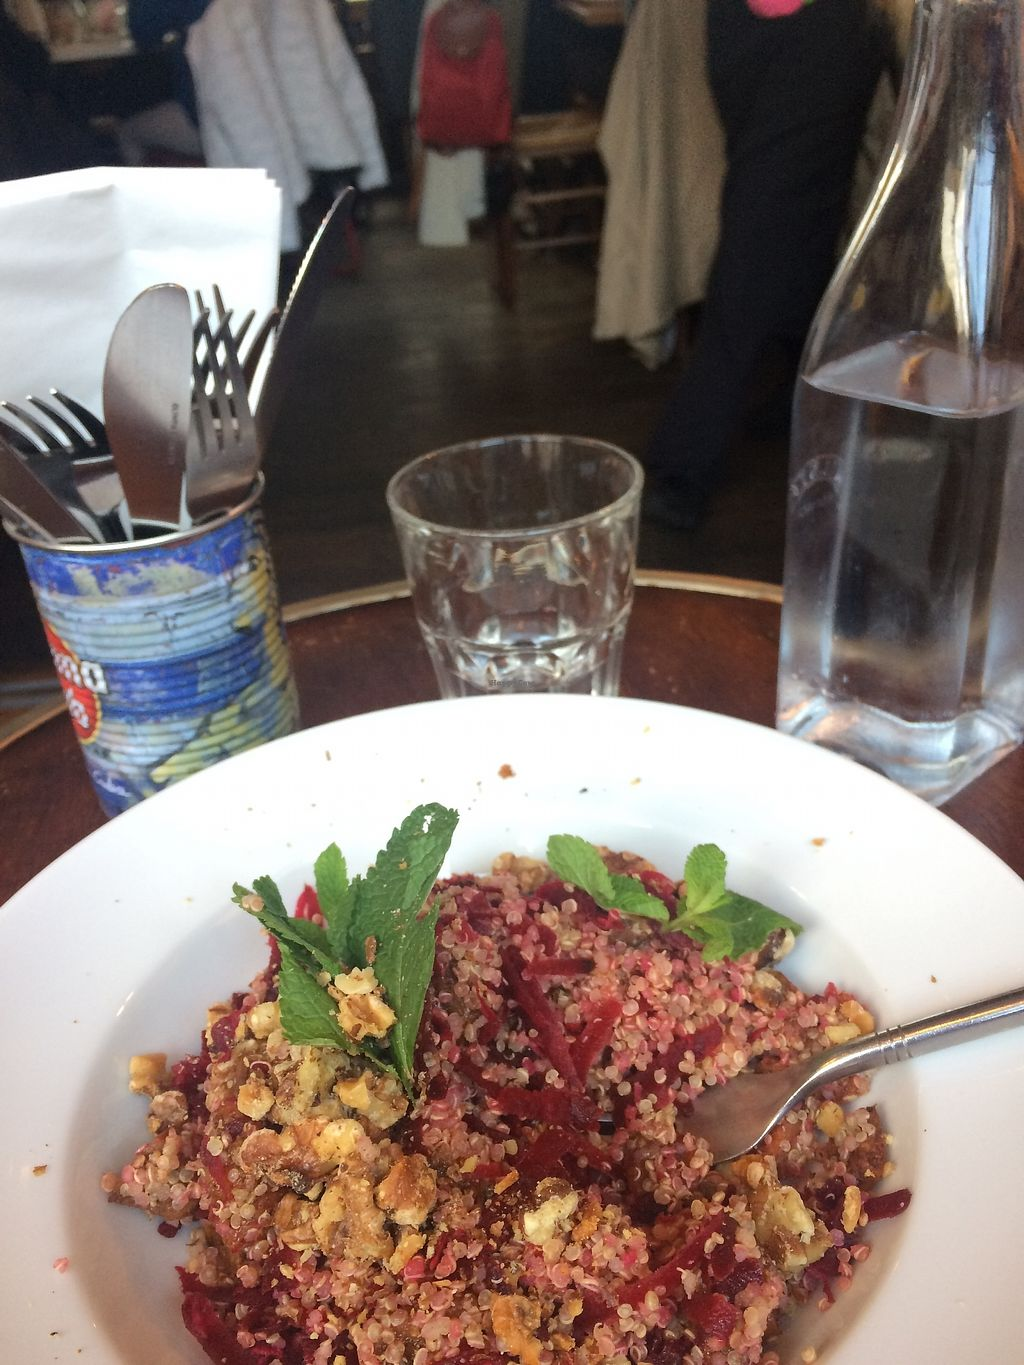 """Photo of The Handle Bar  by <a href=""""/members/profile/PetitNuage"""">PetitNuage</a> <br/> quinoa and pumpkins  <br/> November 4, 2017  - <a href='/contact/abuse/image/104266/321819'>Report</a>"""